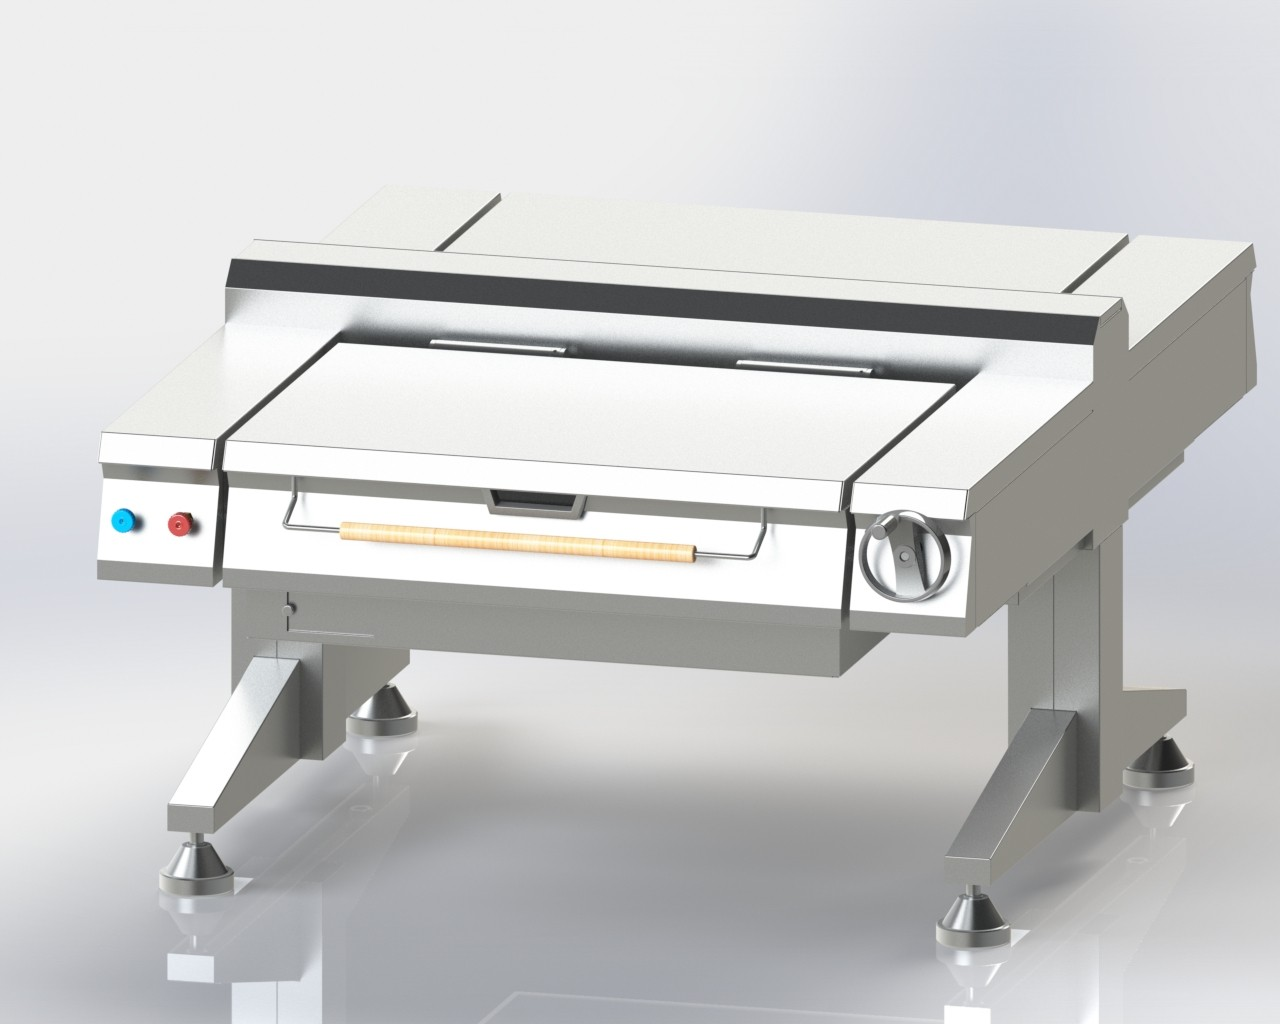 Tilting Pan Twin Unit for boiling and cooking food in bulk